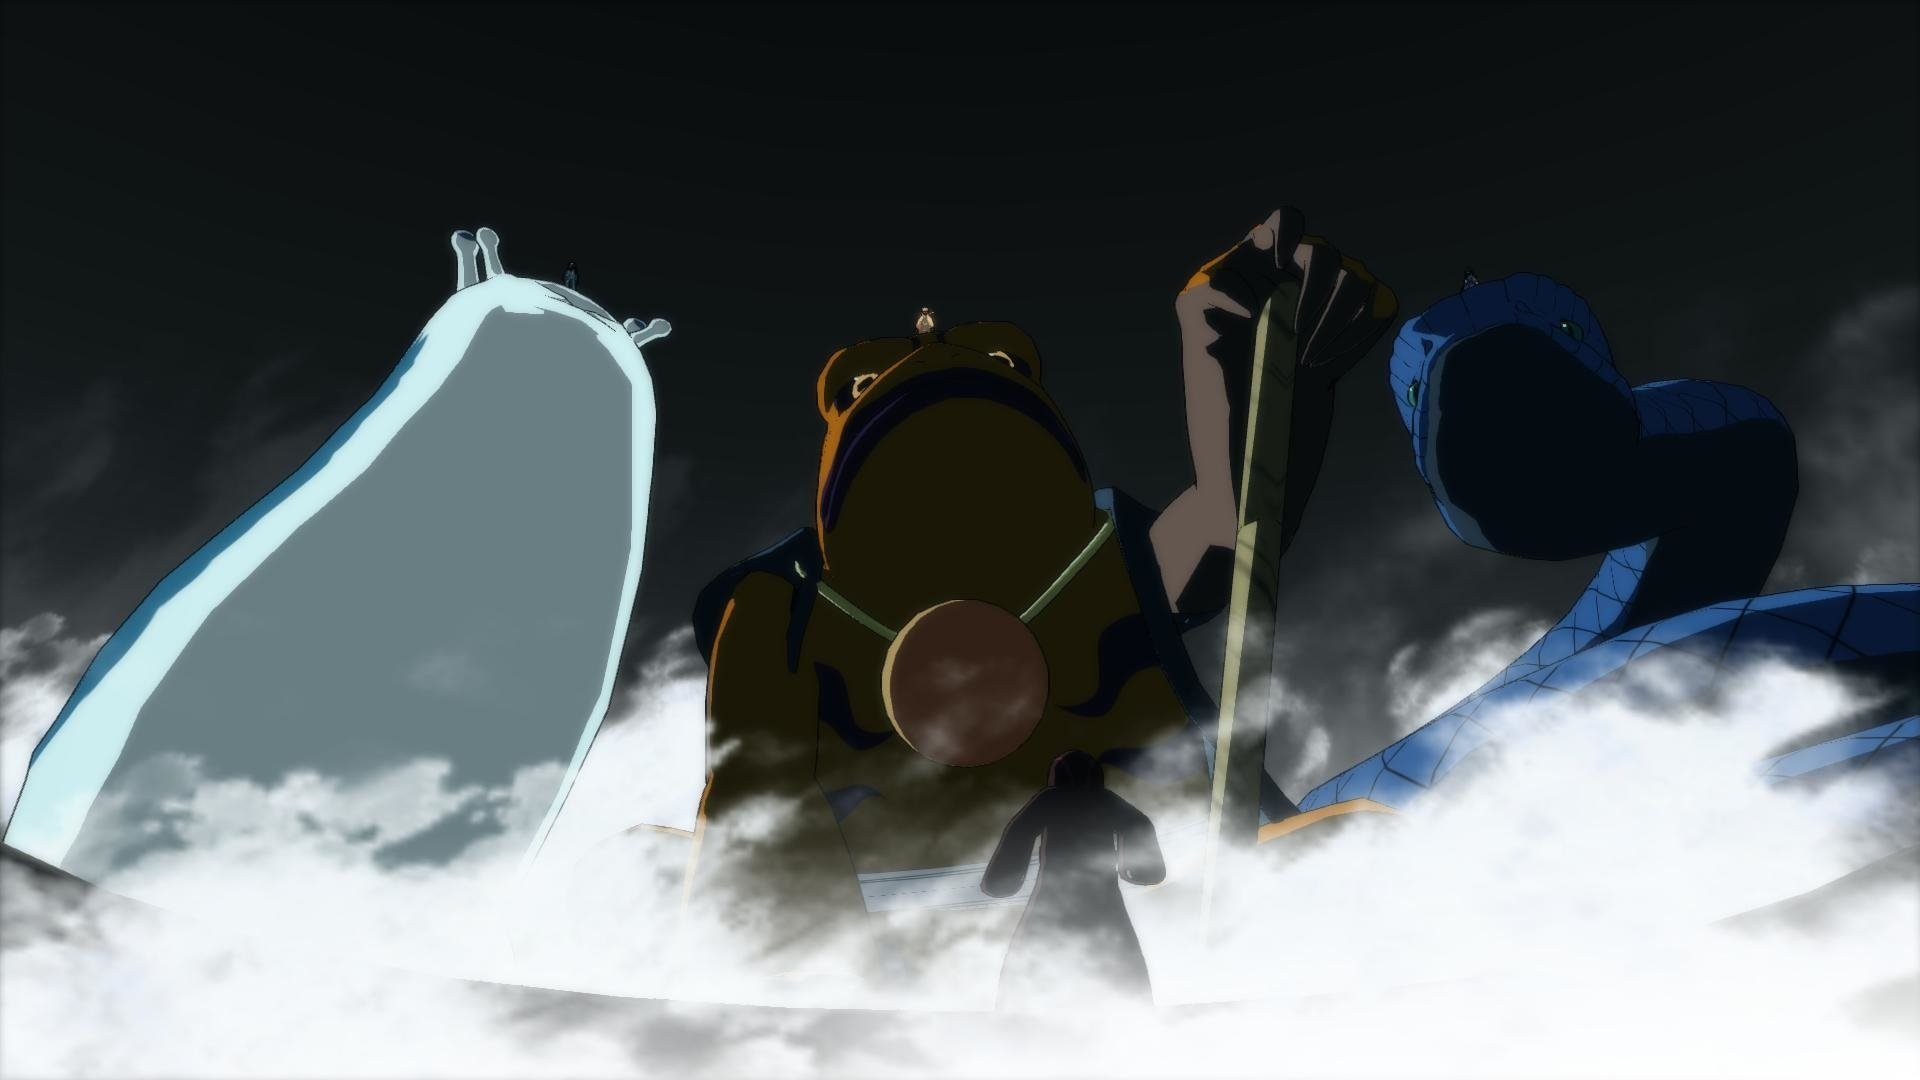 team 7 summons HD Wallpaper | Background Image | 1920x1080 ...